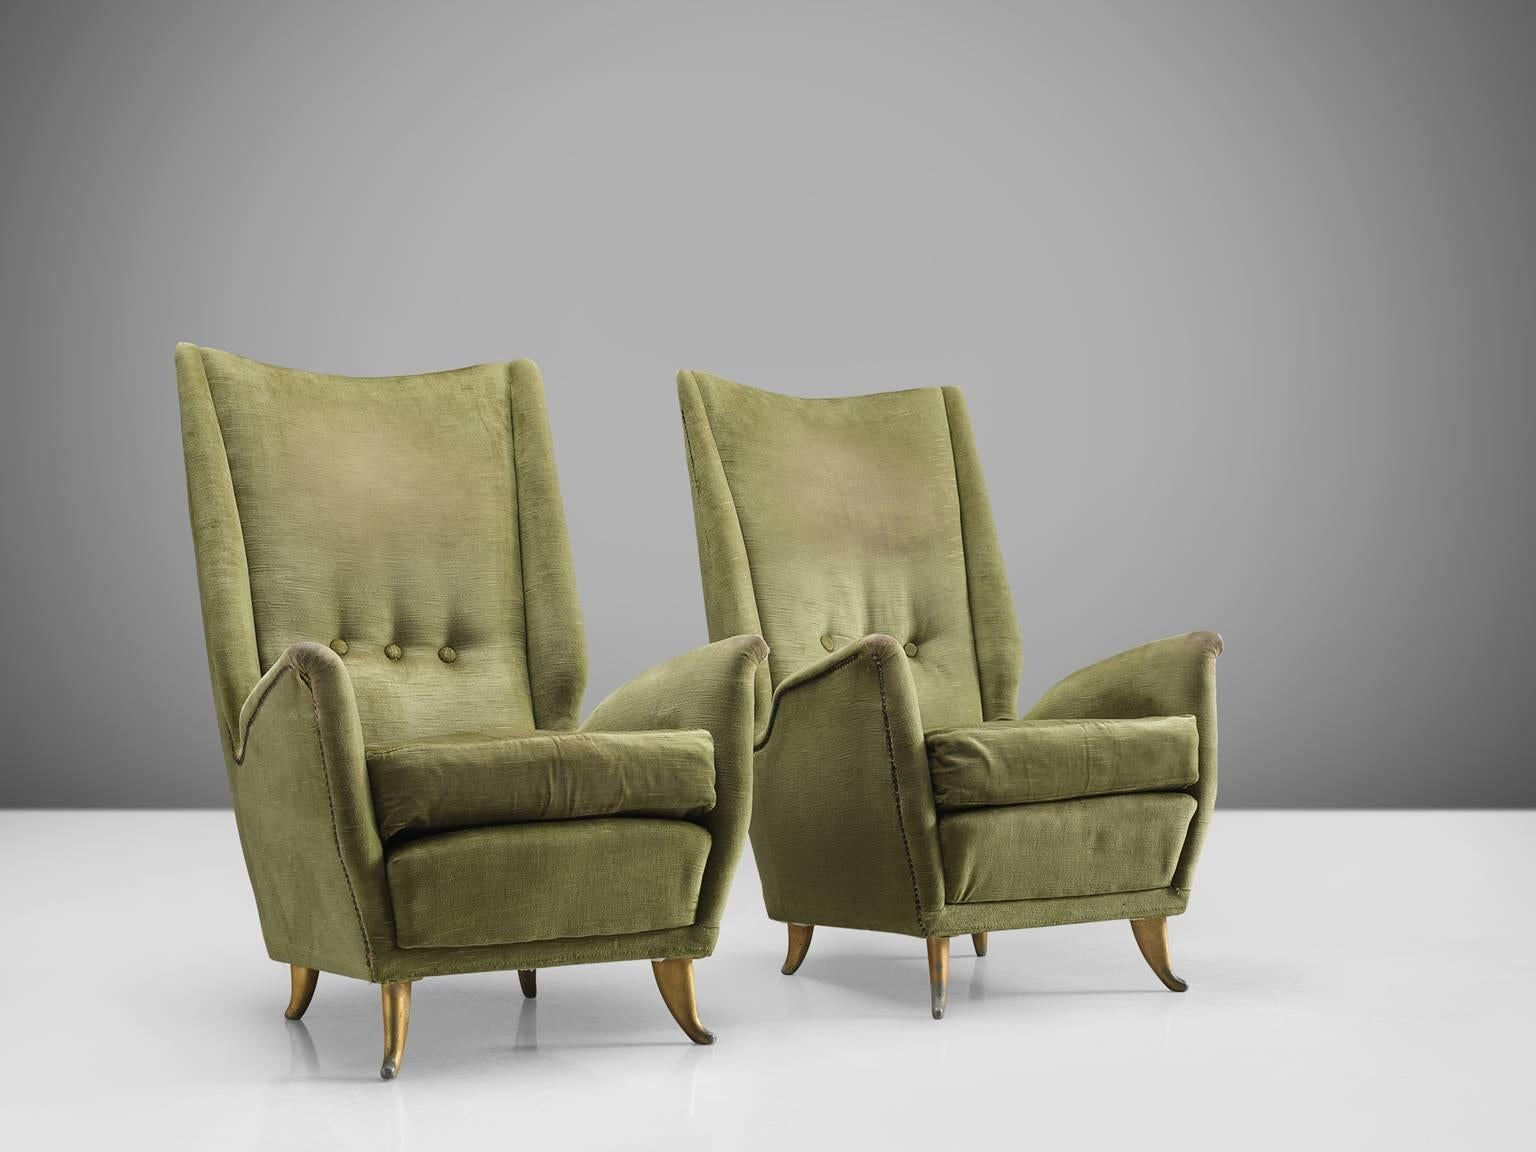 ISA, Pair Of Lounge Chairs, In Fabric And Wood, For Italy, 1950s